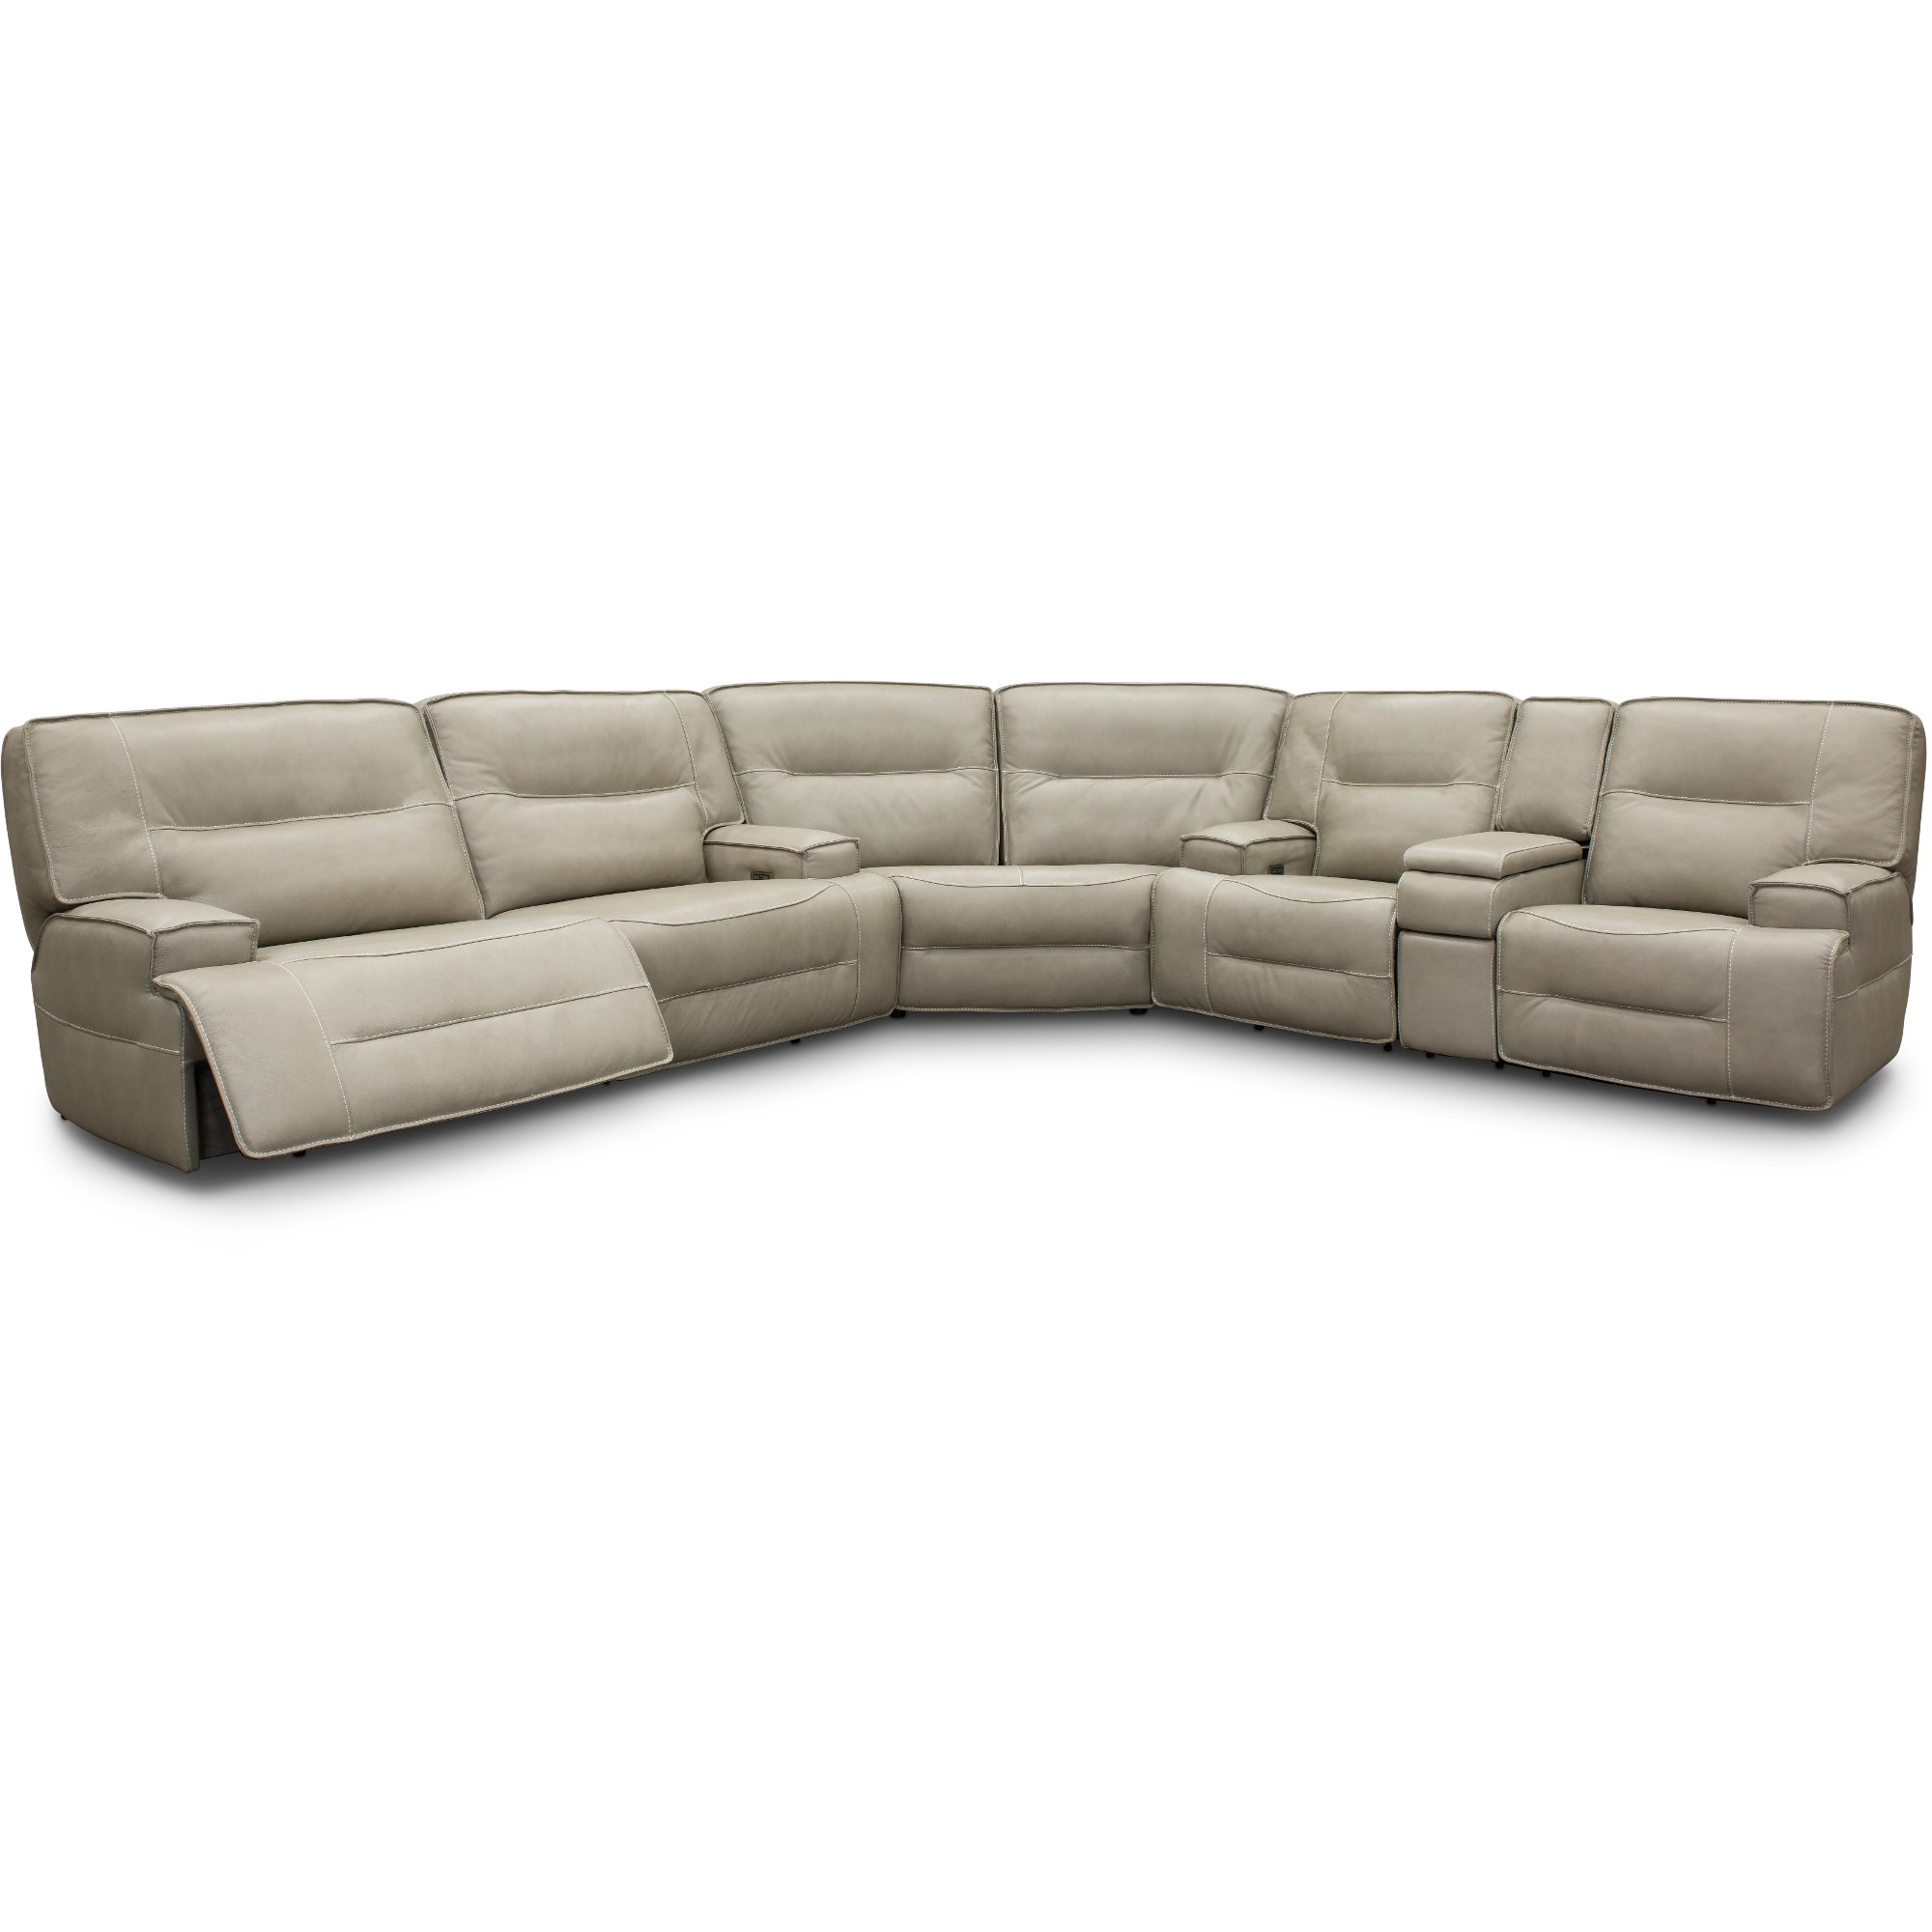 Dove Tan Leather Match Power Reclining Sectional Sofa   Rockies ...